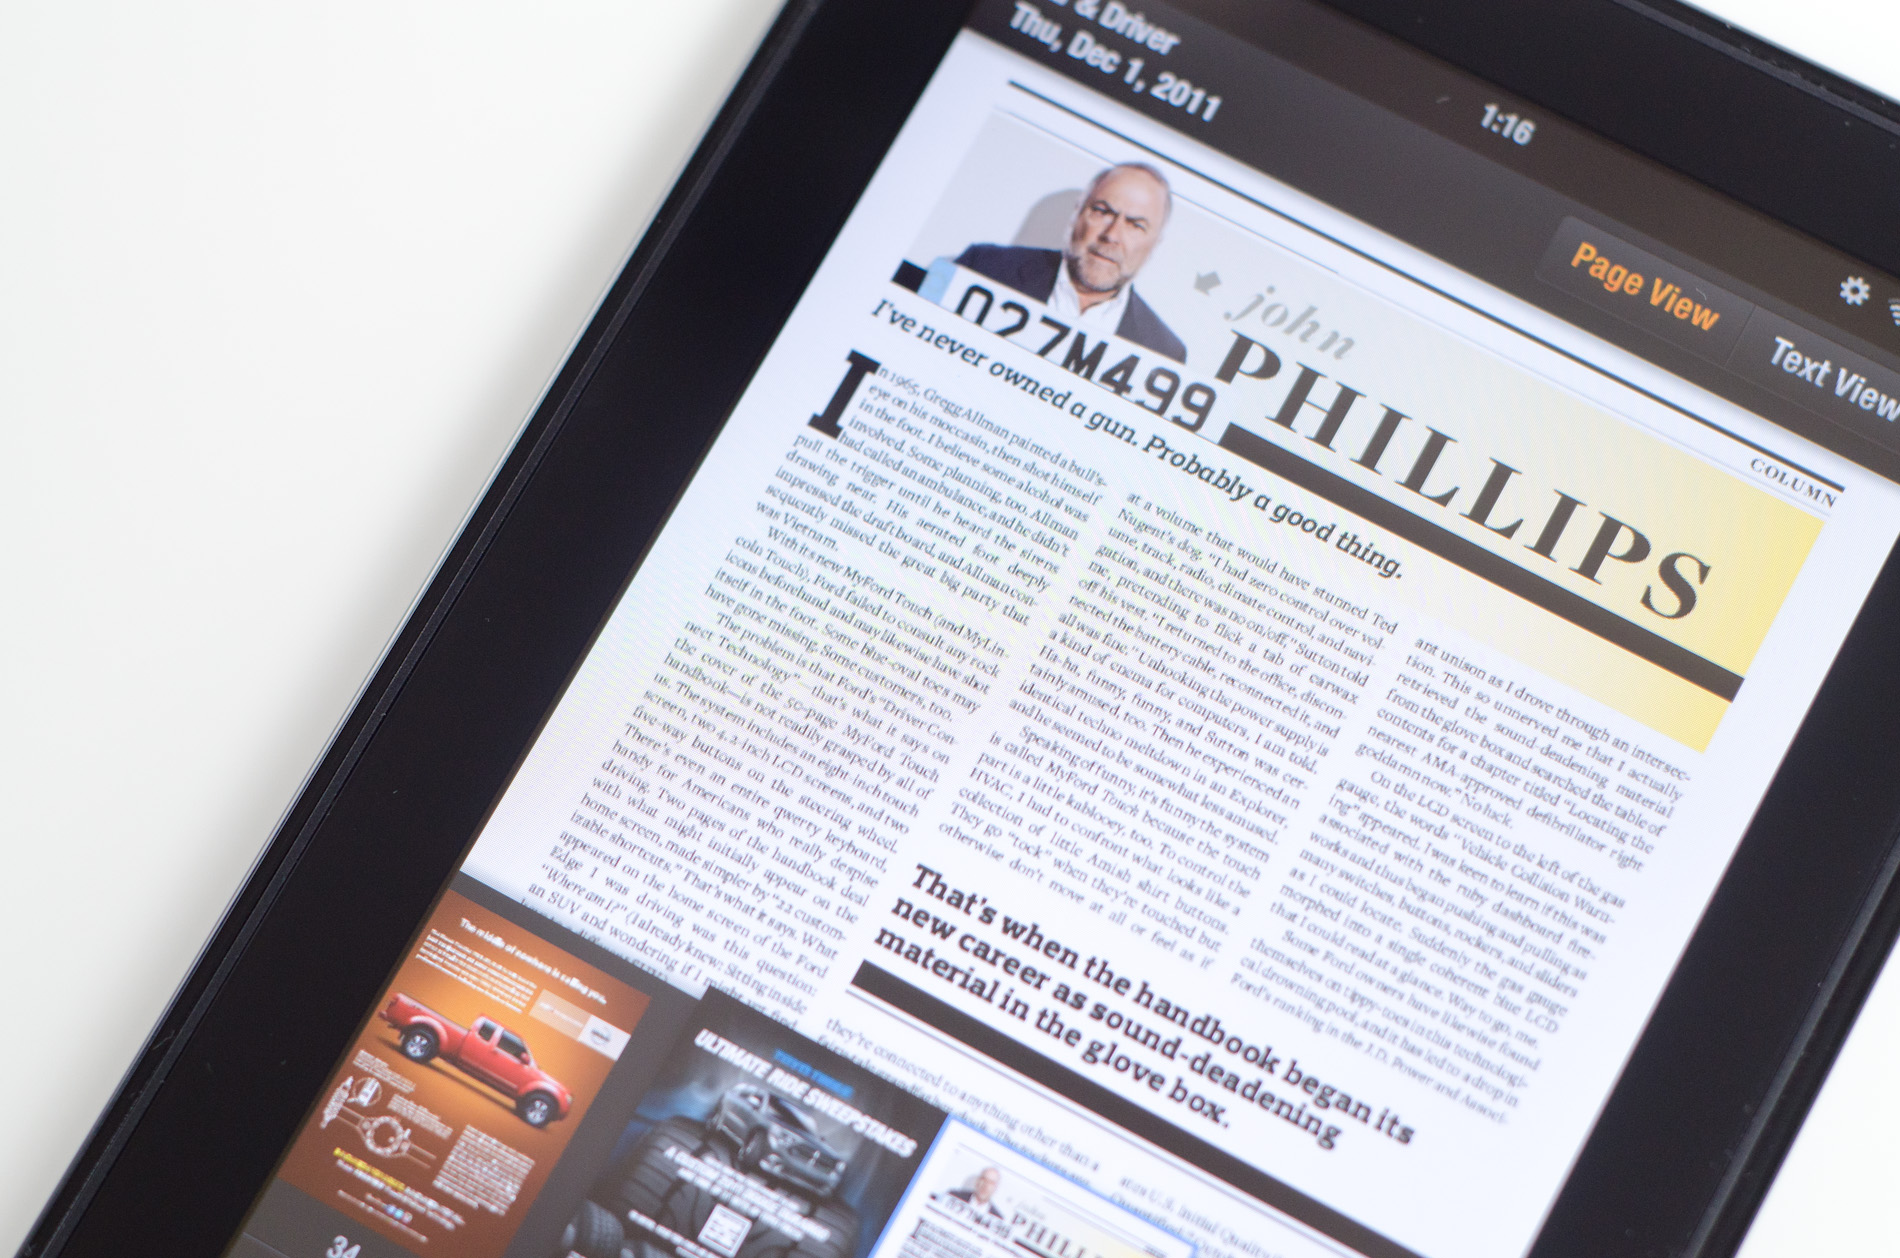 How to Use Immersion Reading on Kindle Fire Tablets